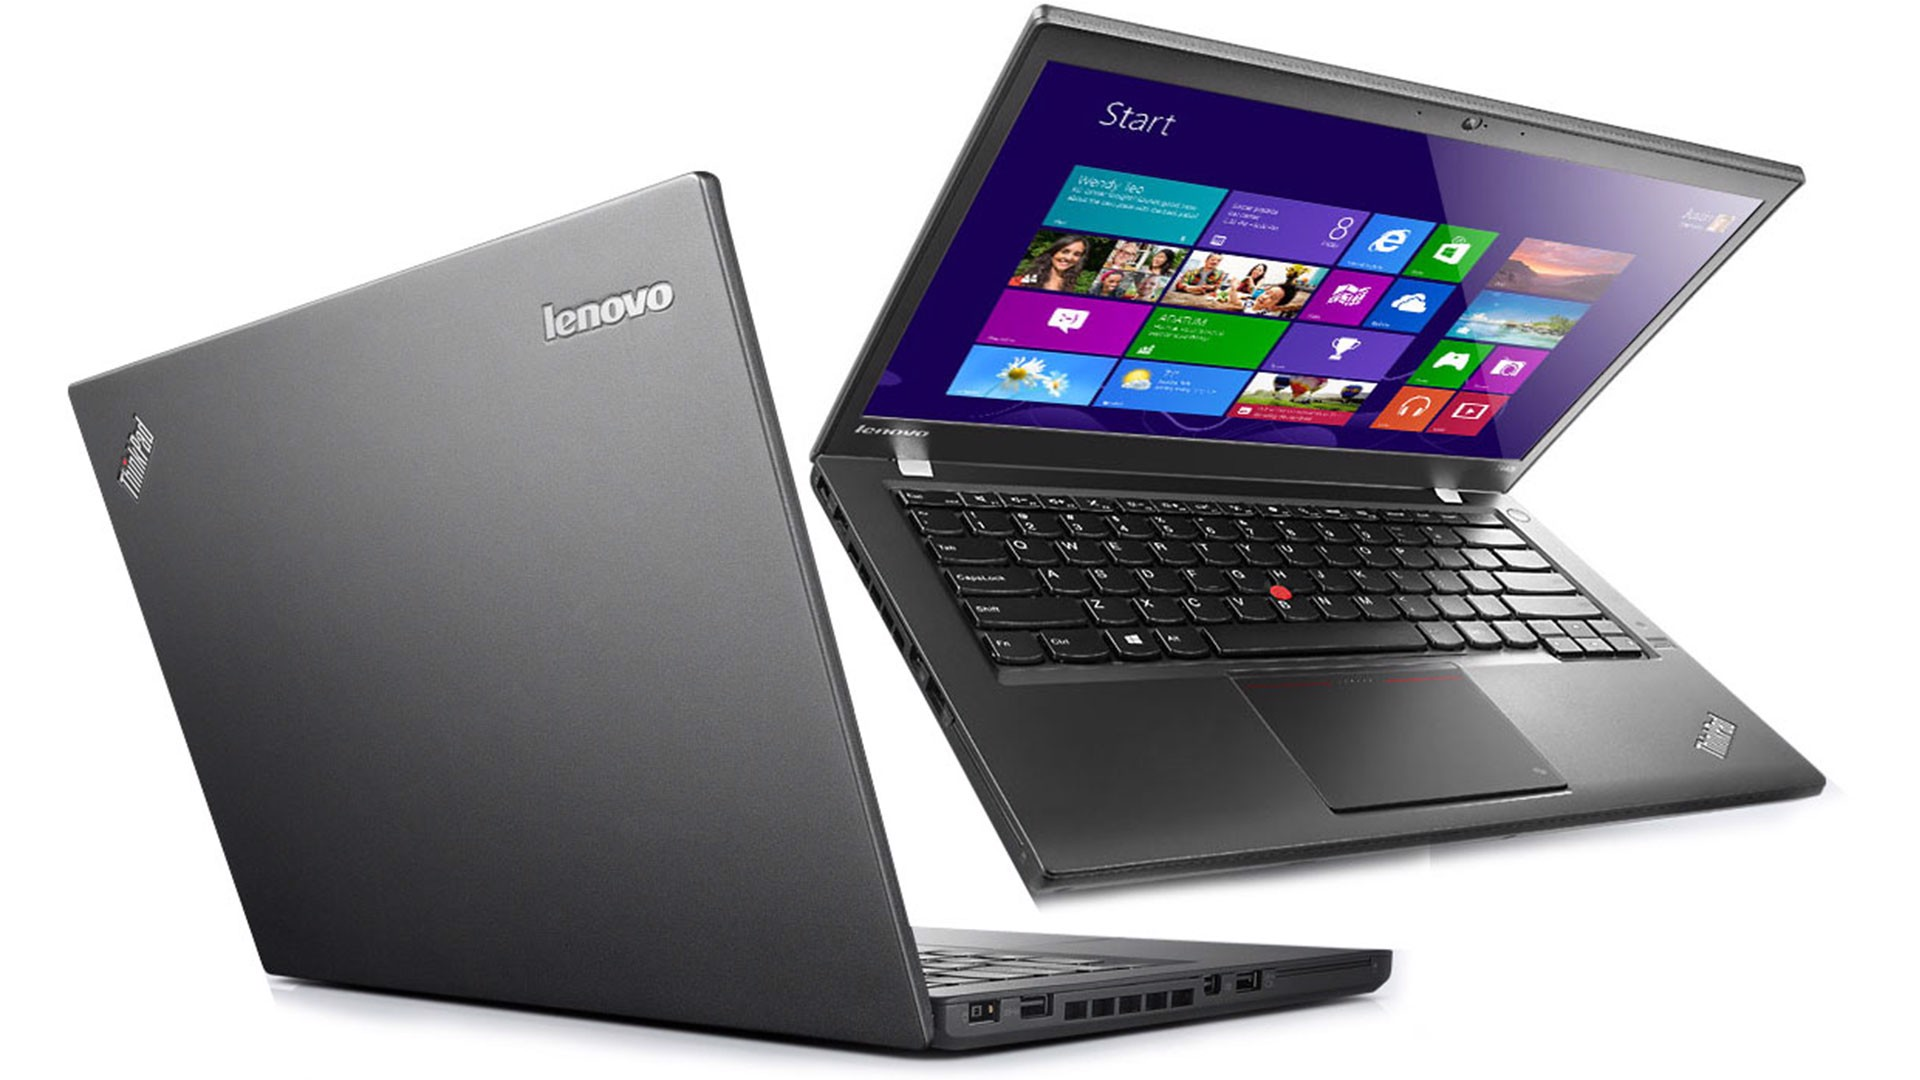 Lenovo Thinkpad T440 core i7-4600u